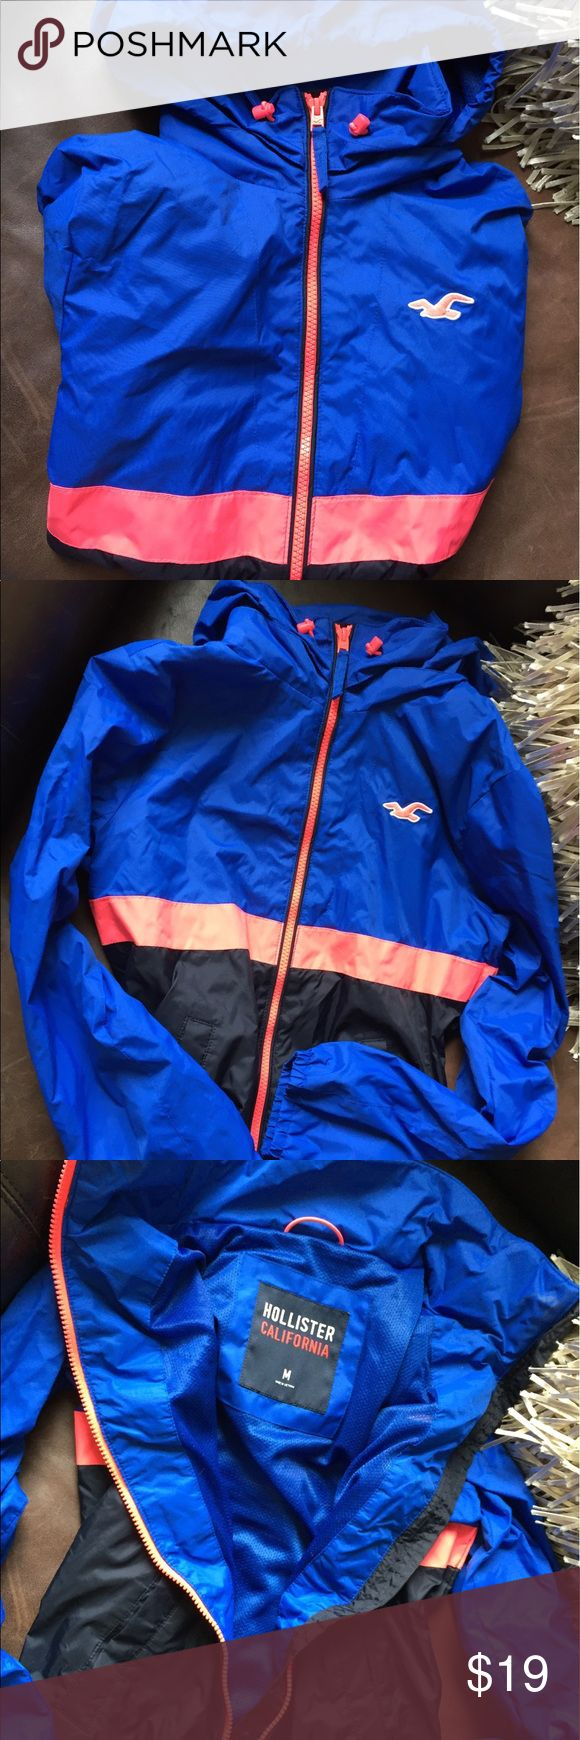 New Hollister Windbreaker Jacket Size M. Perfect condition. New but no tags. Hollister Jackets & Coats